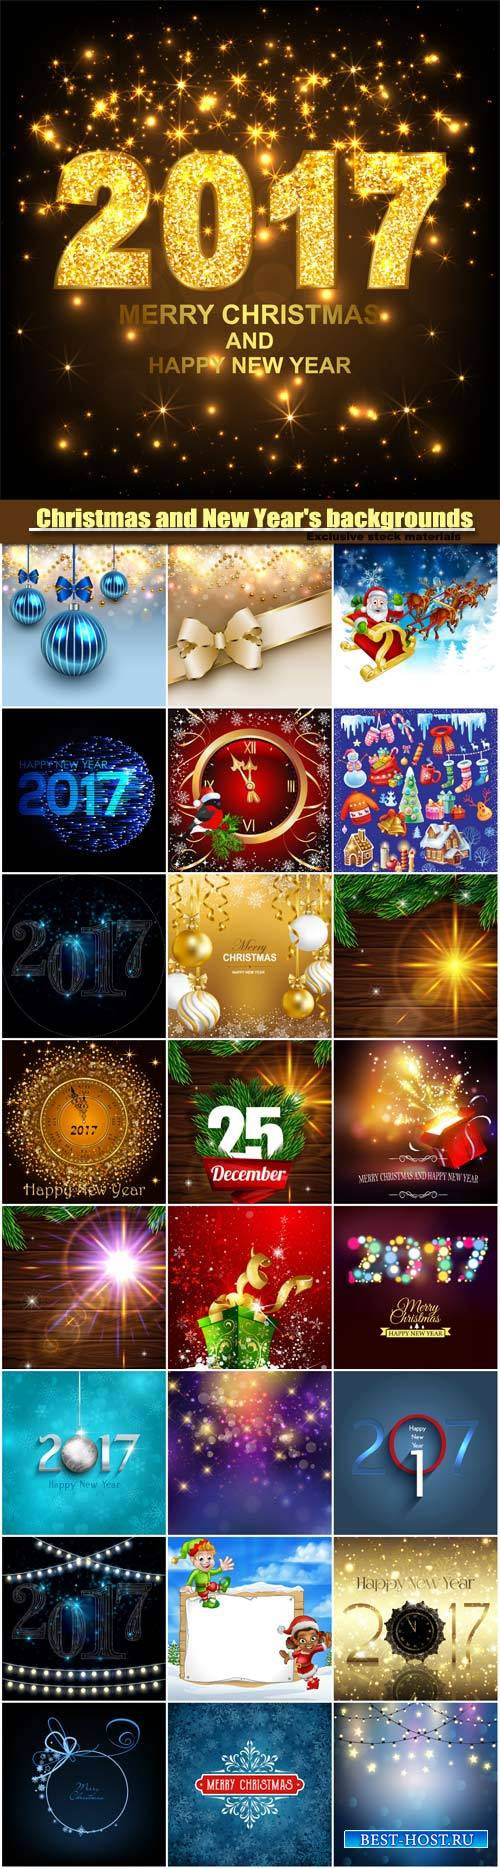 Vector set of Christmas and New Year's backgrounds